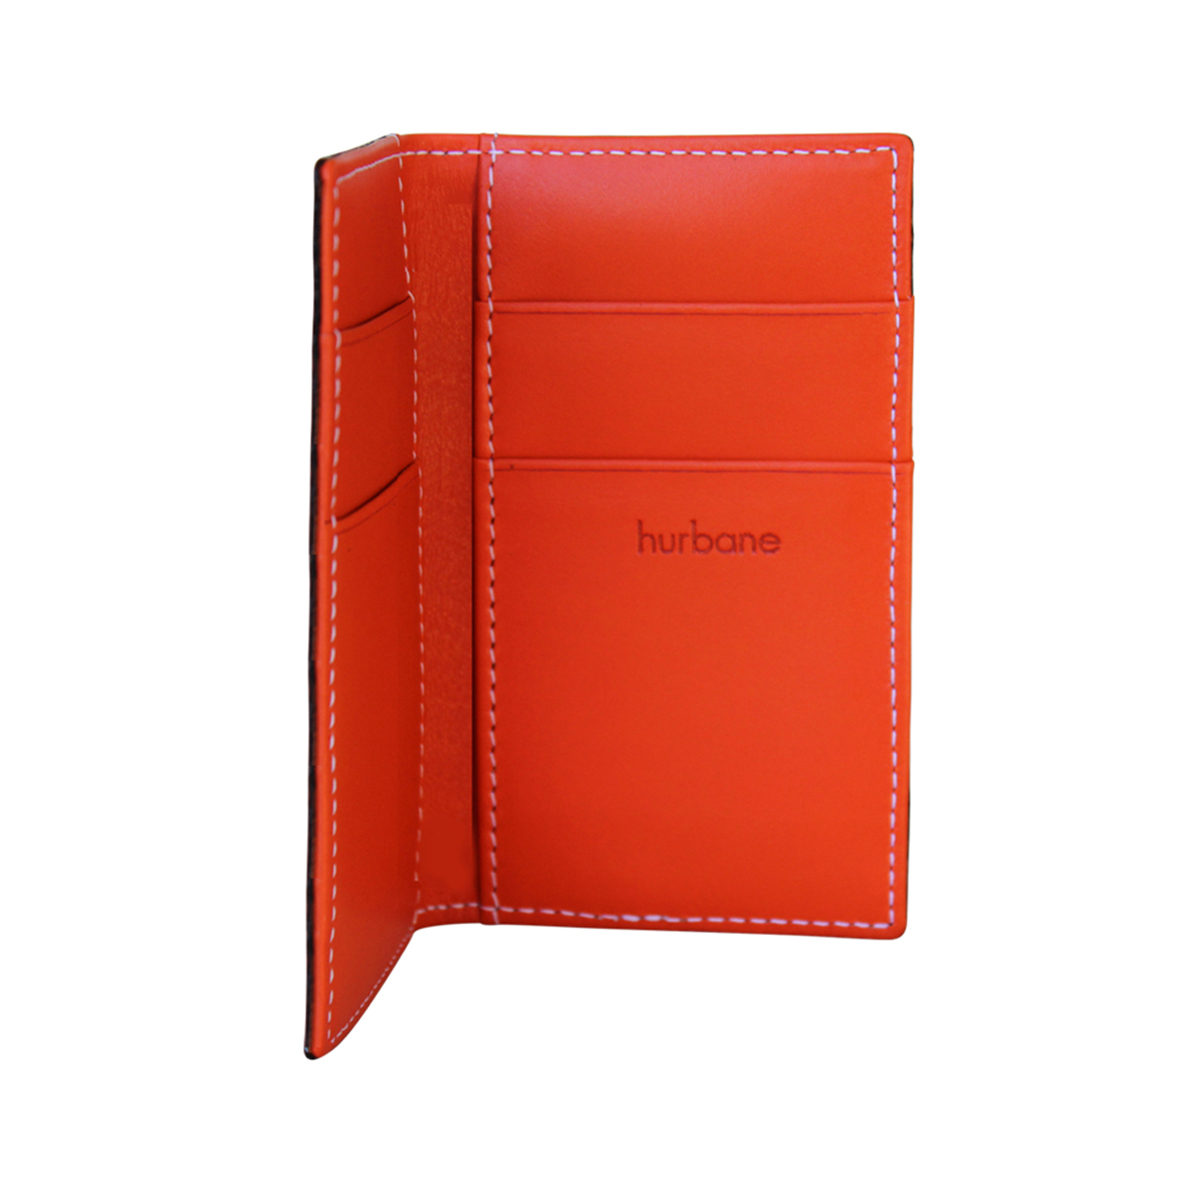 Porte cartes homme cuir orange surpiqu for Porte carte homme